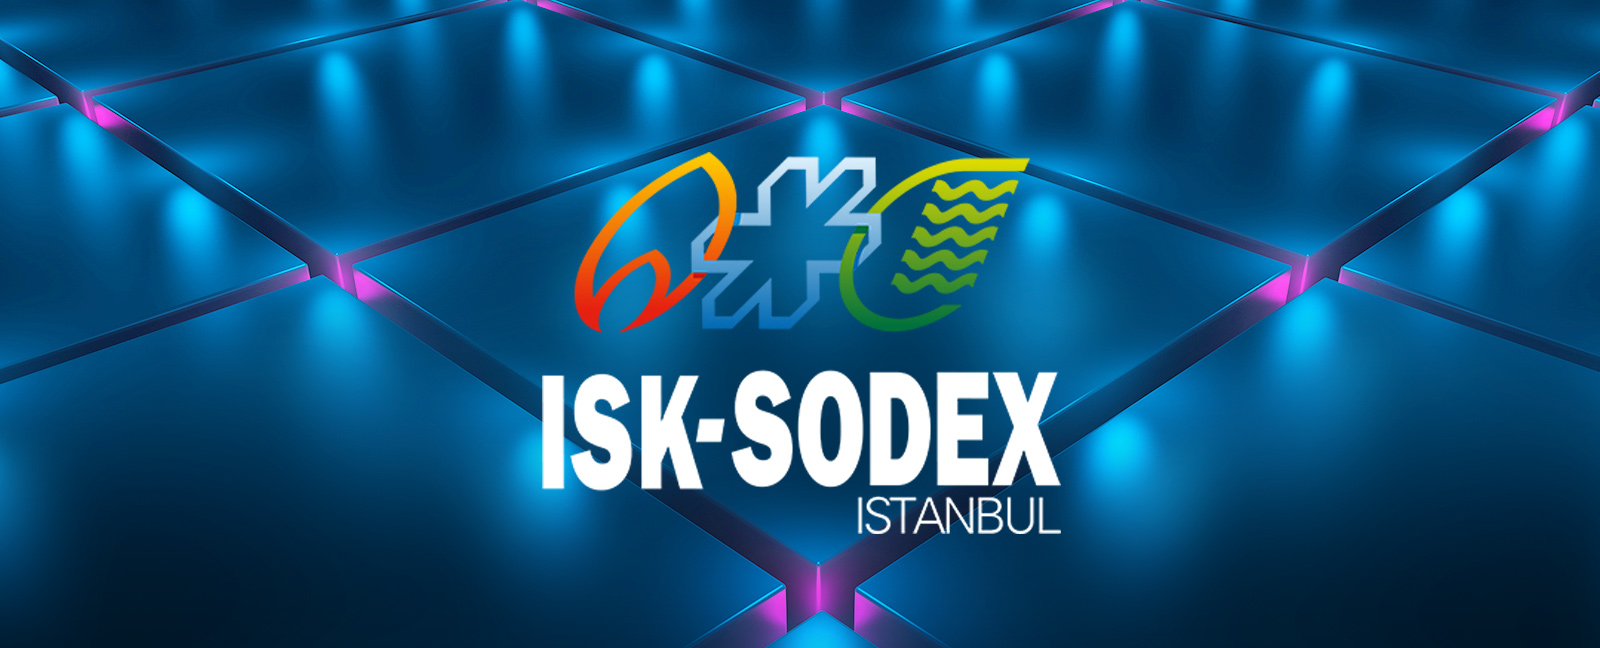 Discover our innovations at ISK SODEX Istanbul!